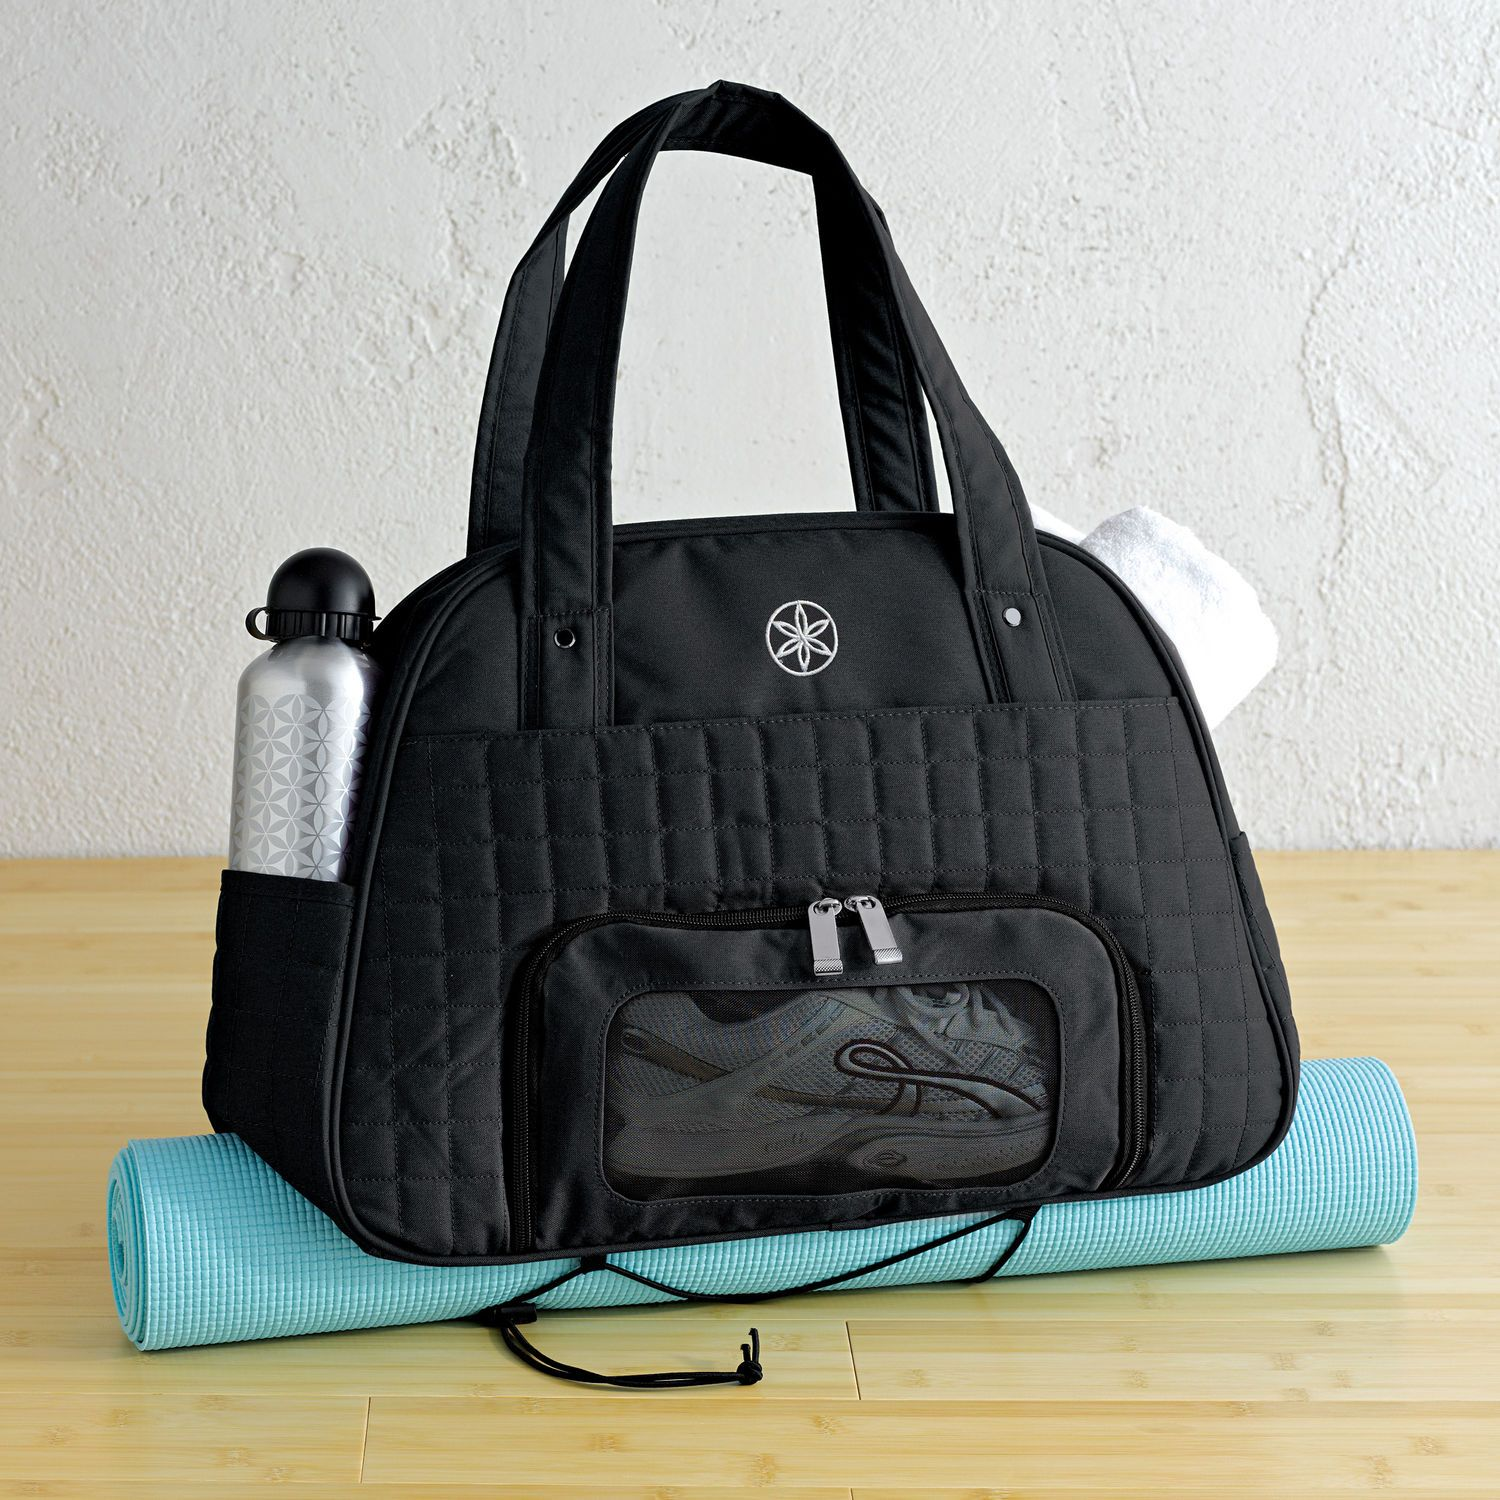 Gym Bag With Separate Shoe Compartment I Wish There Were More Bags Like This